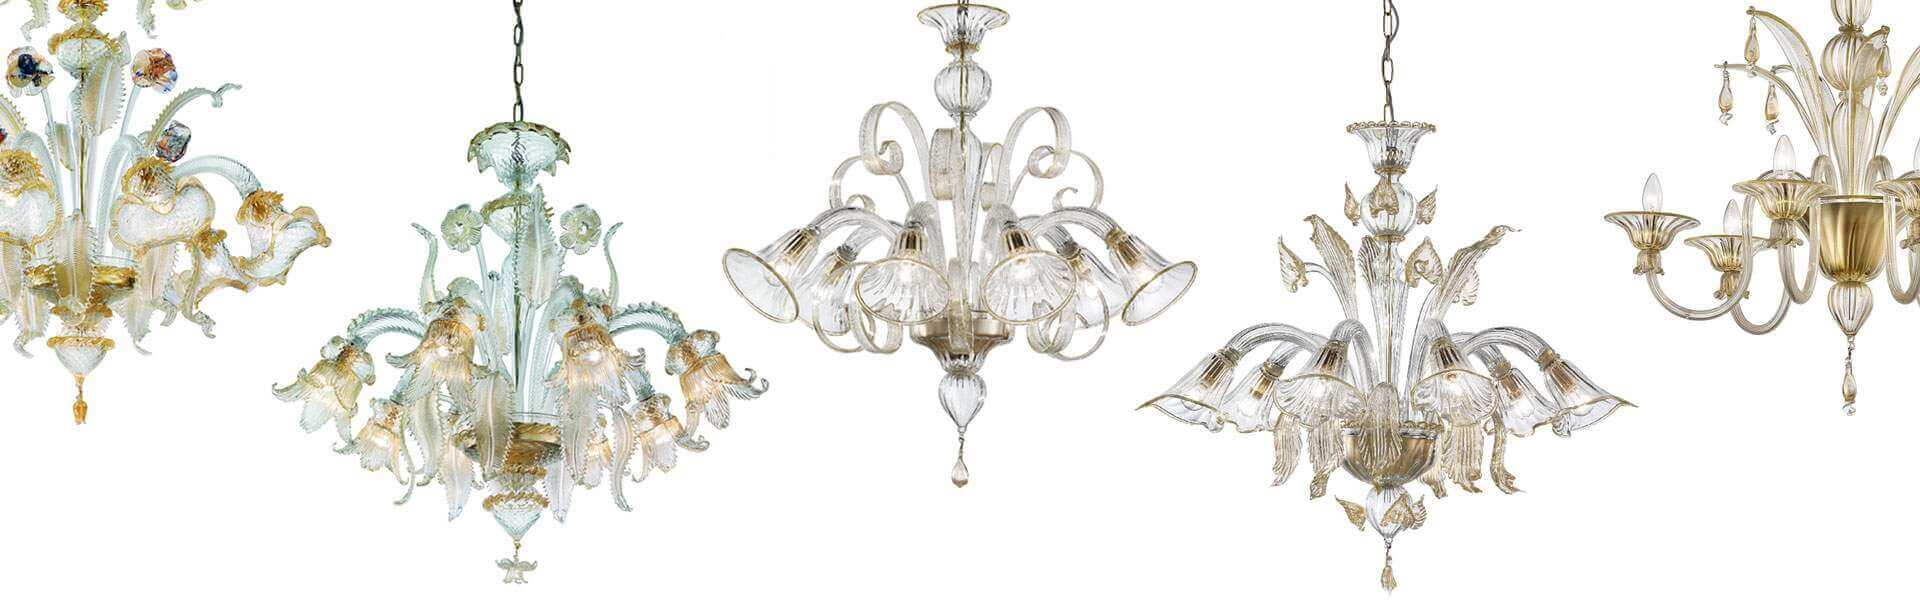 that chandelier italian with room vintage your chandeliers ukxymhh murano give classy a look to glass